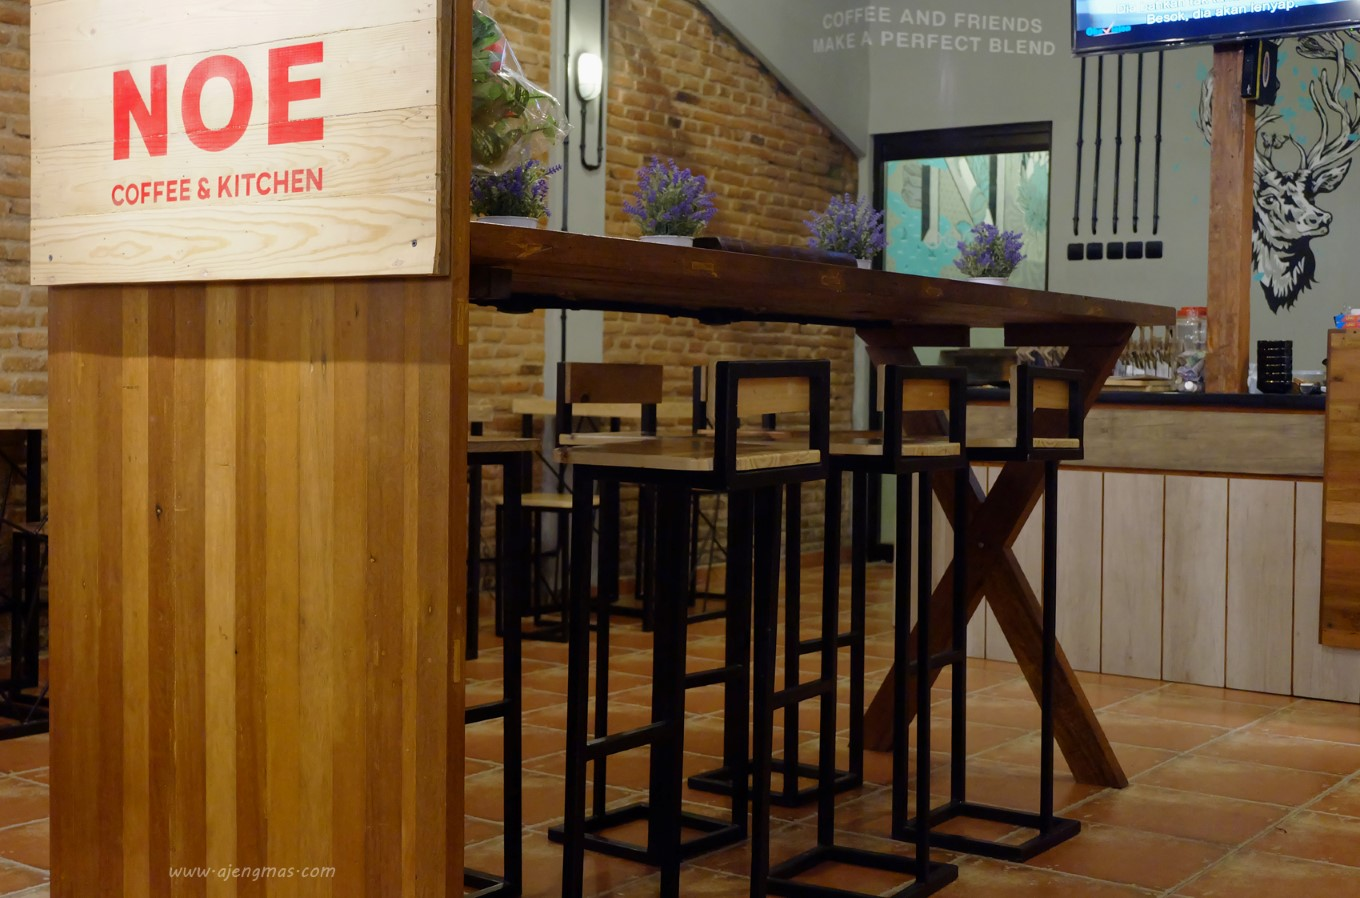 noe-coffee-kitchen-review-tempat-ngopi-blogger-jogja-ajengmas